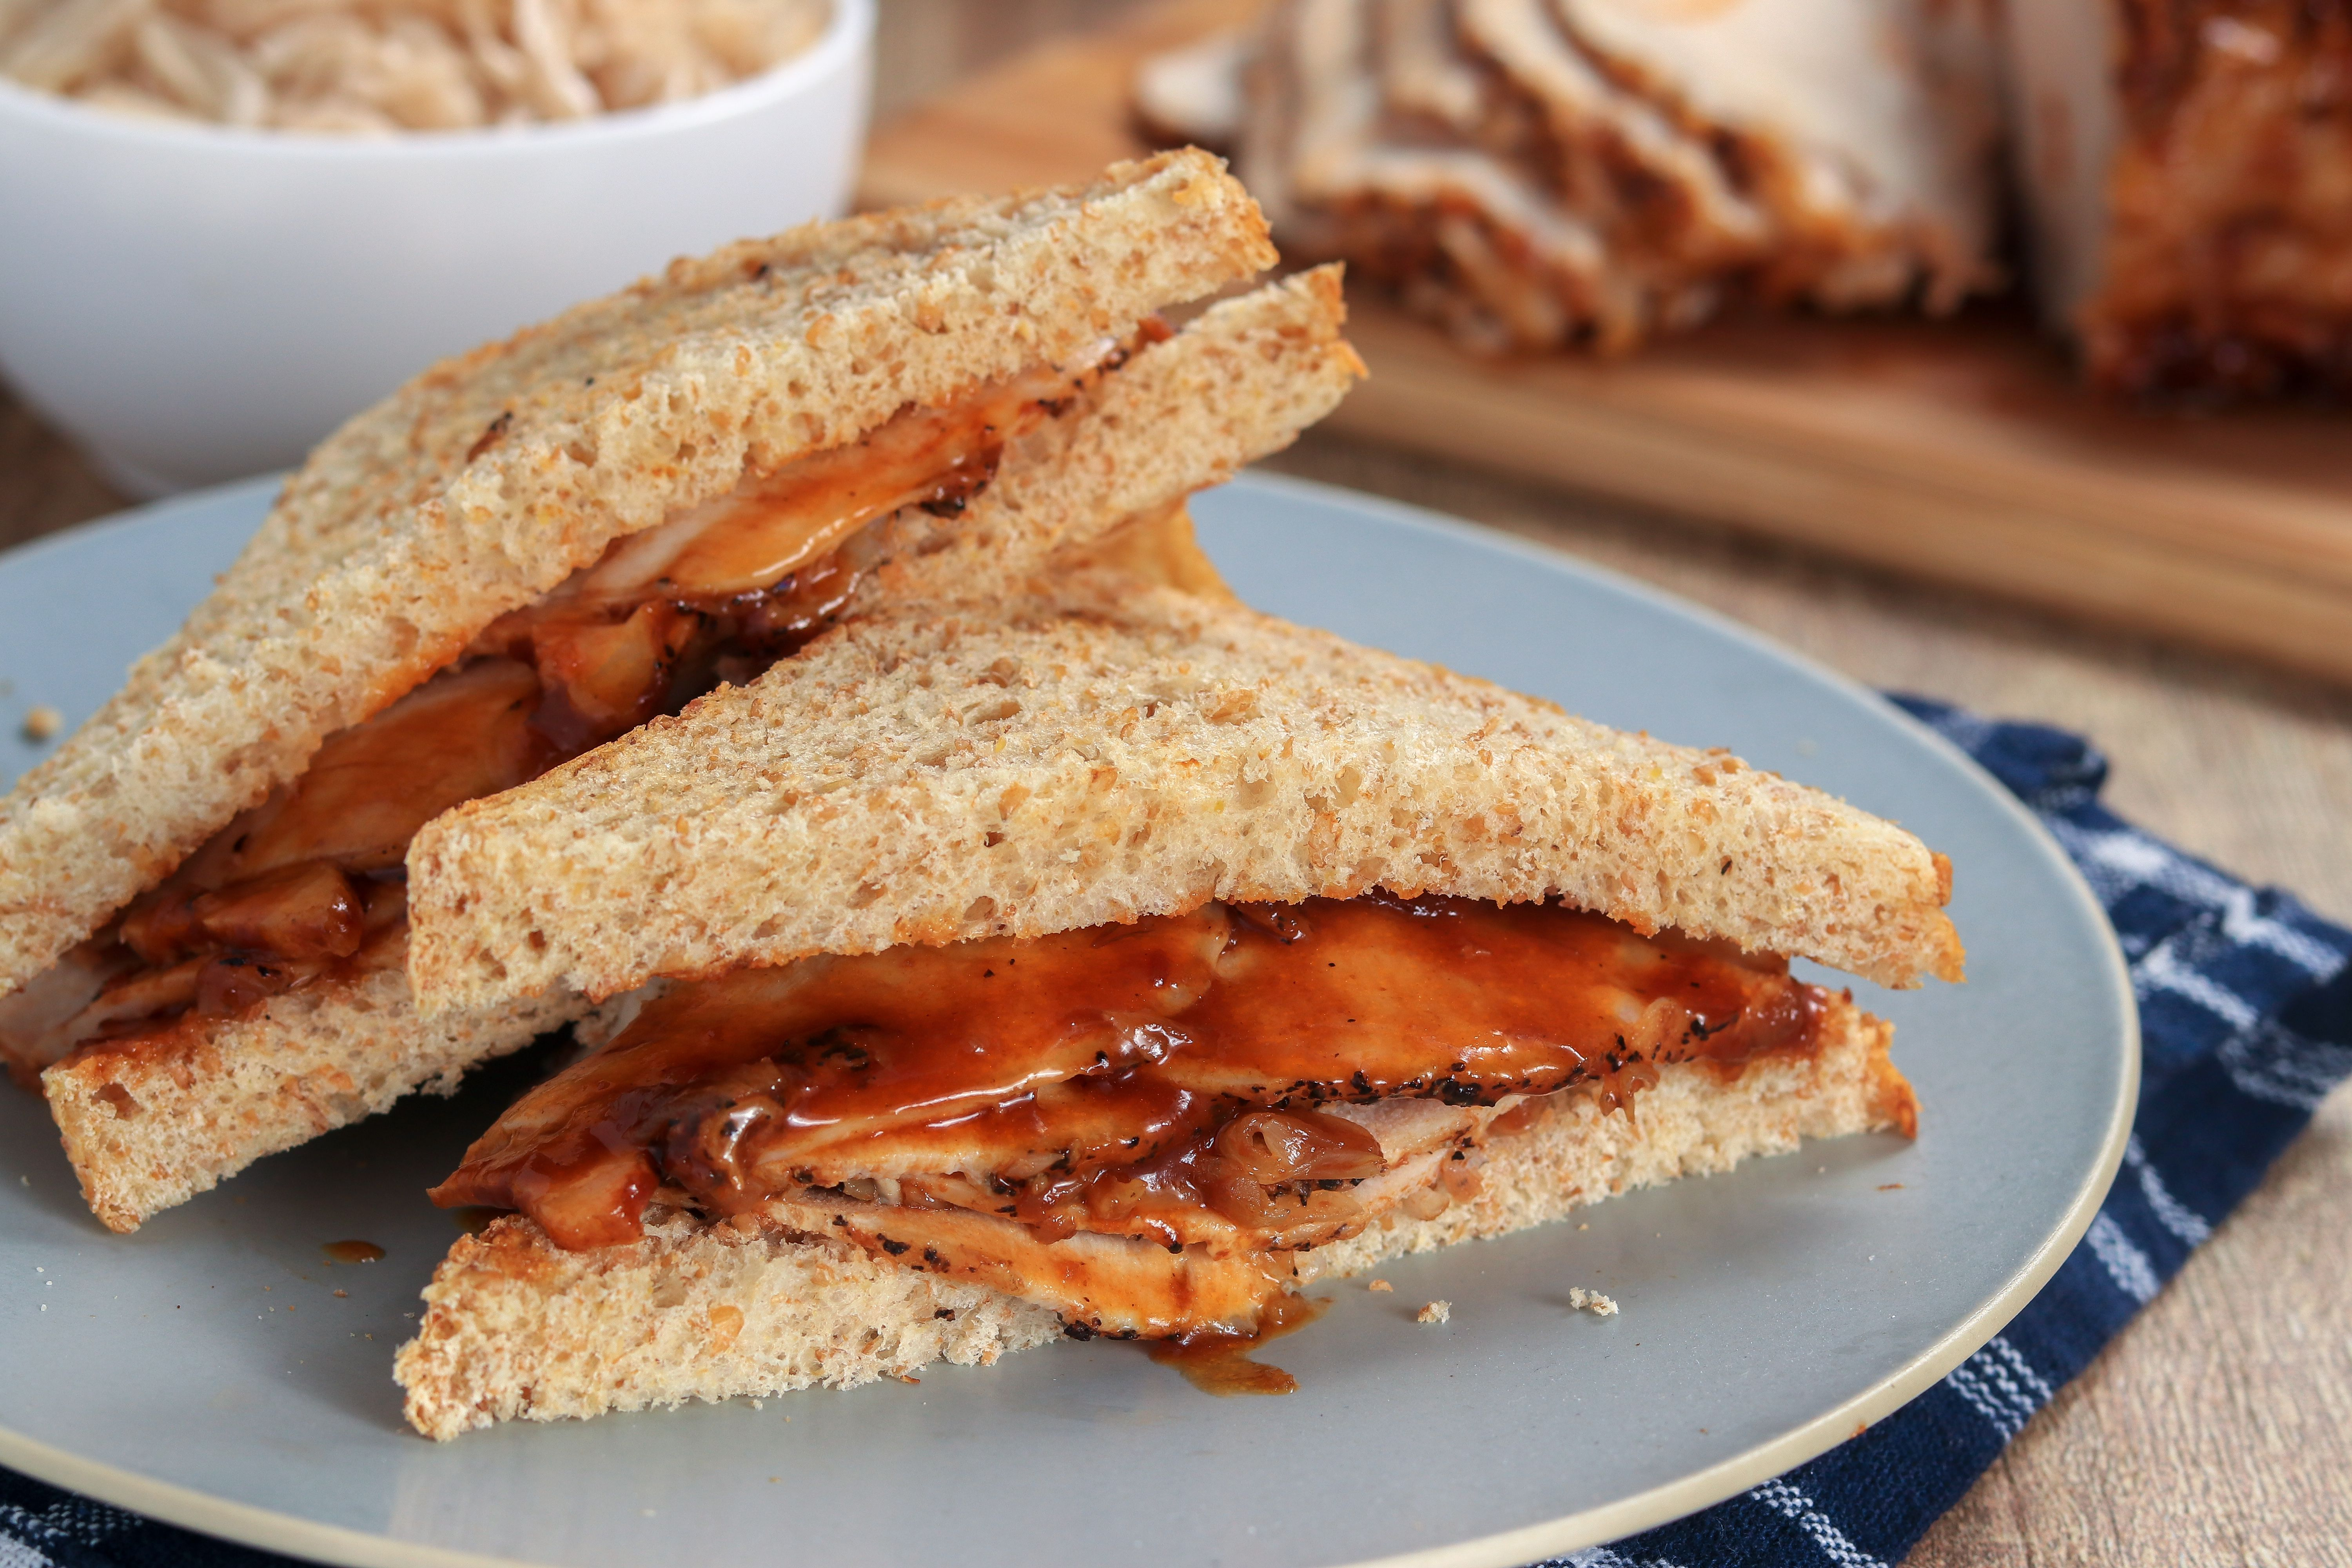 Easy Slow Cooker Pork Loin Barbecue sandwich